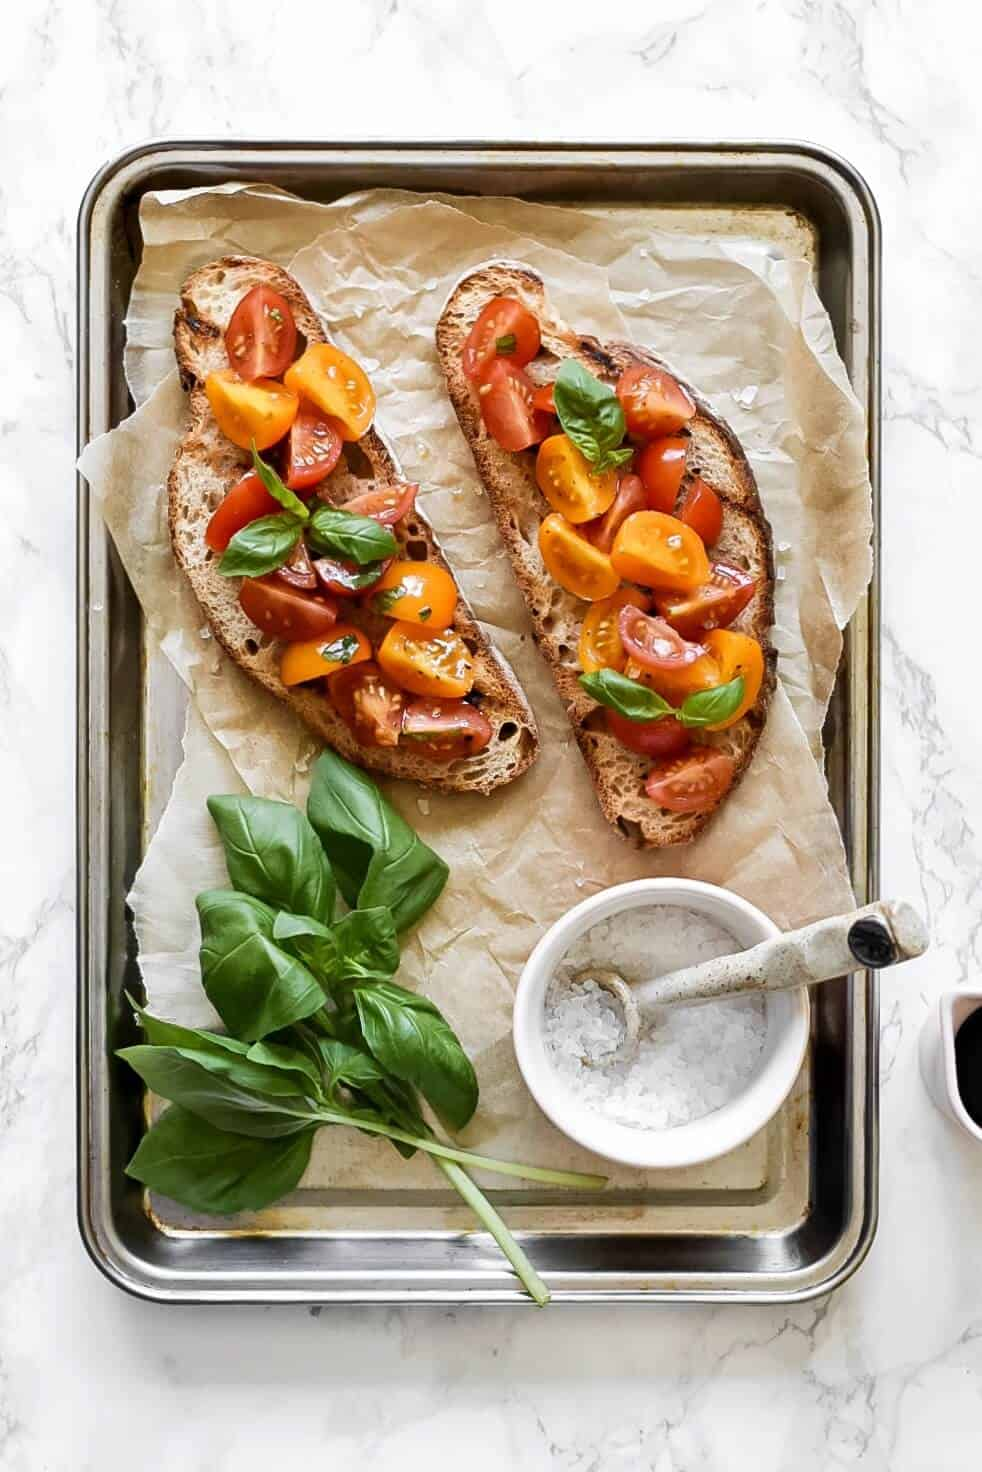 2 slices of bruschetta on a tray with basil and salt